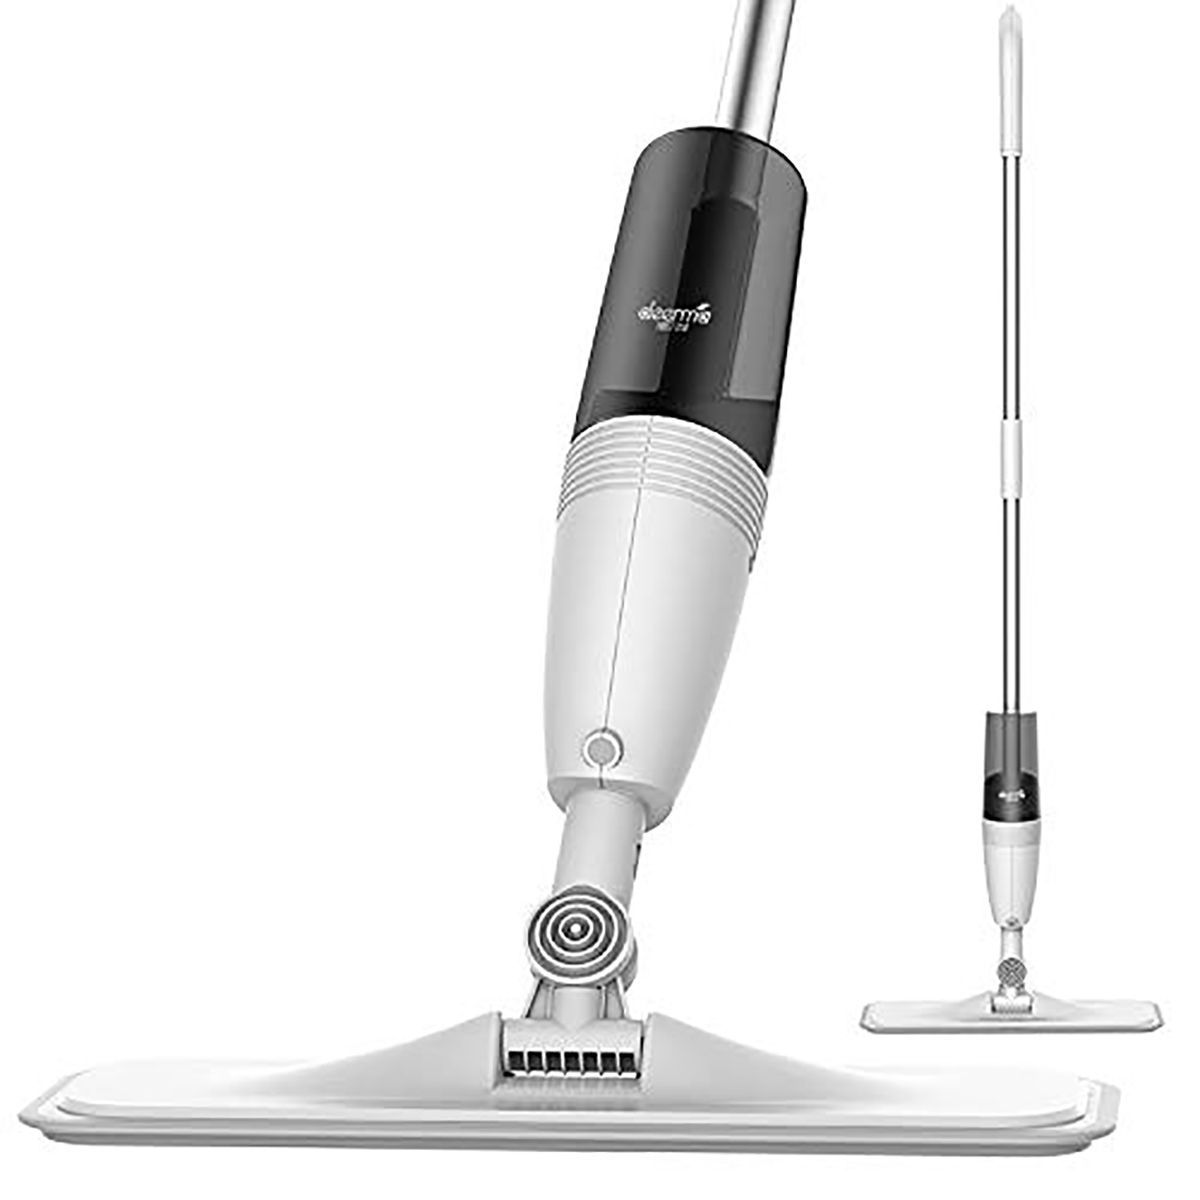 Deerma TB500 Insta Clean Spray Mop with Replaceable Head